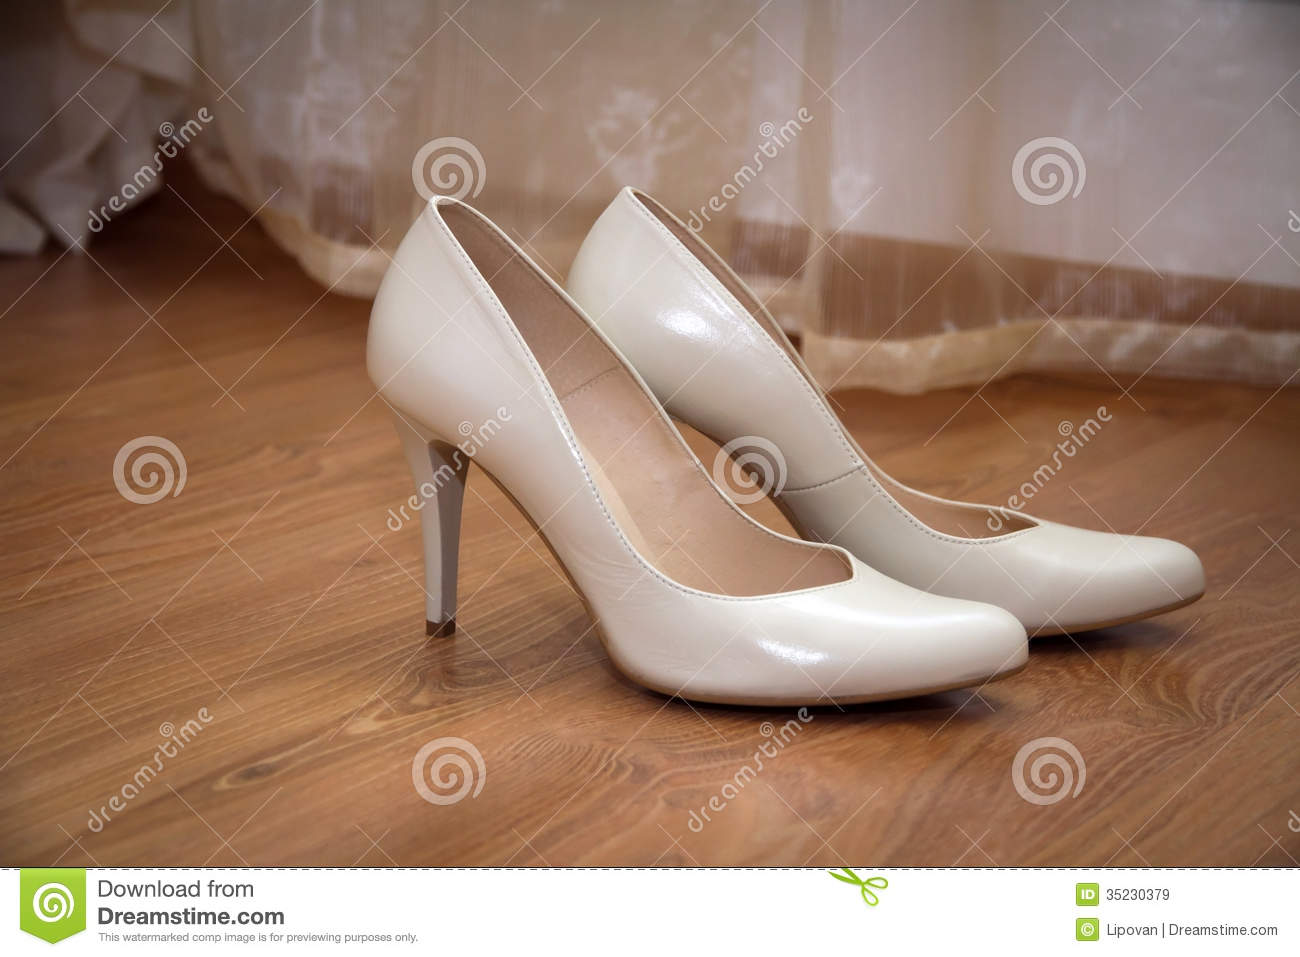 Royalty Free Stock Photo Download A Pair Of Pale Cream Colored Wedding Womens Shoes